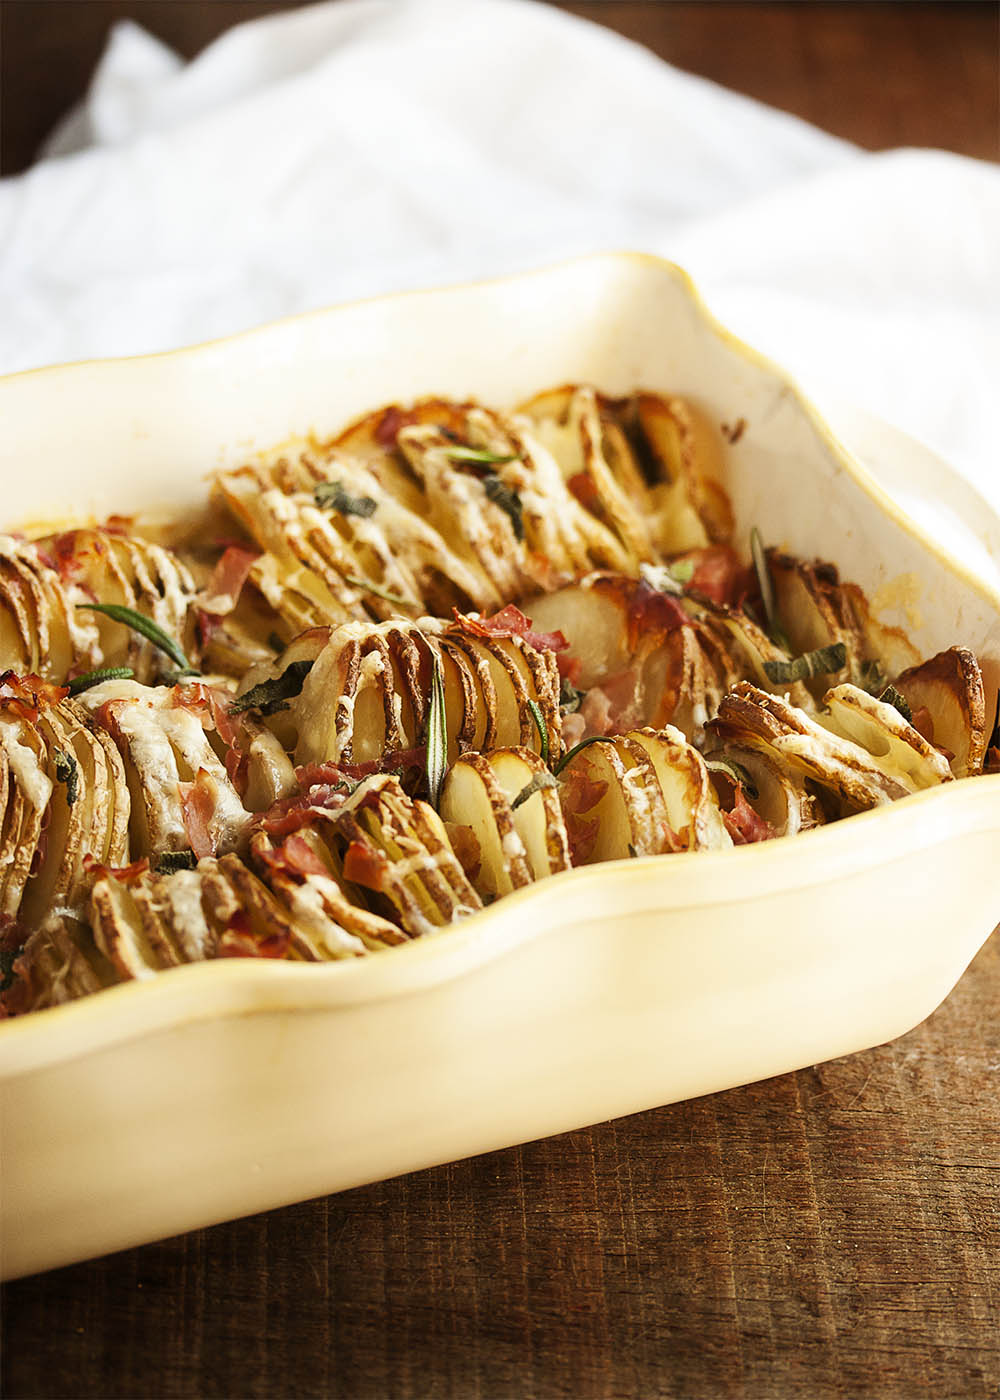 A casserole dish filled with browned and crispy spiralized hasselback potato gratin.